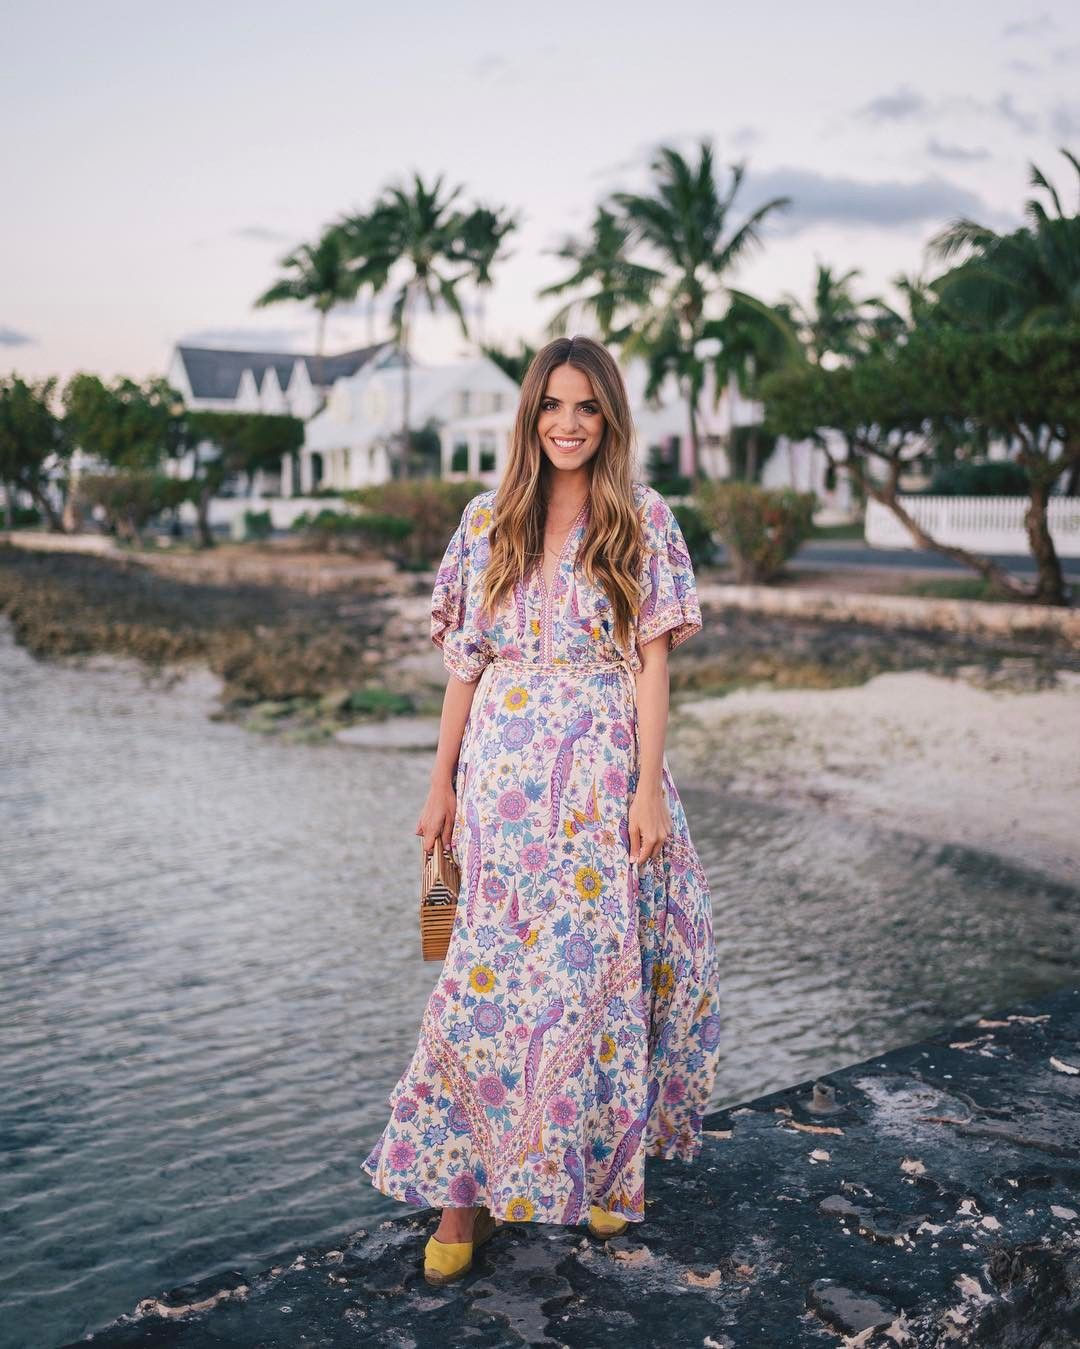 Sunset Breeze On The Island Link In Profile To This Look Harbourisland Bahamas Summer Dress Outfits Casual Women Dresses Casual Summer Floral Dress Casual [ 1349 x 1080 Pixel ]